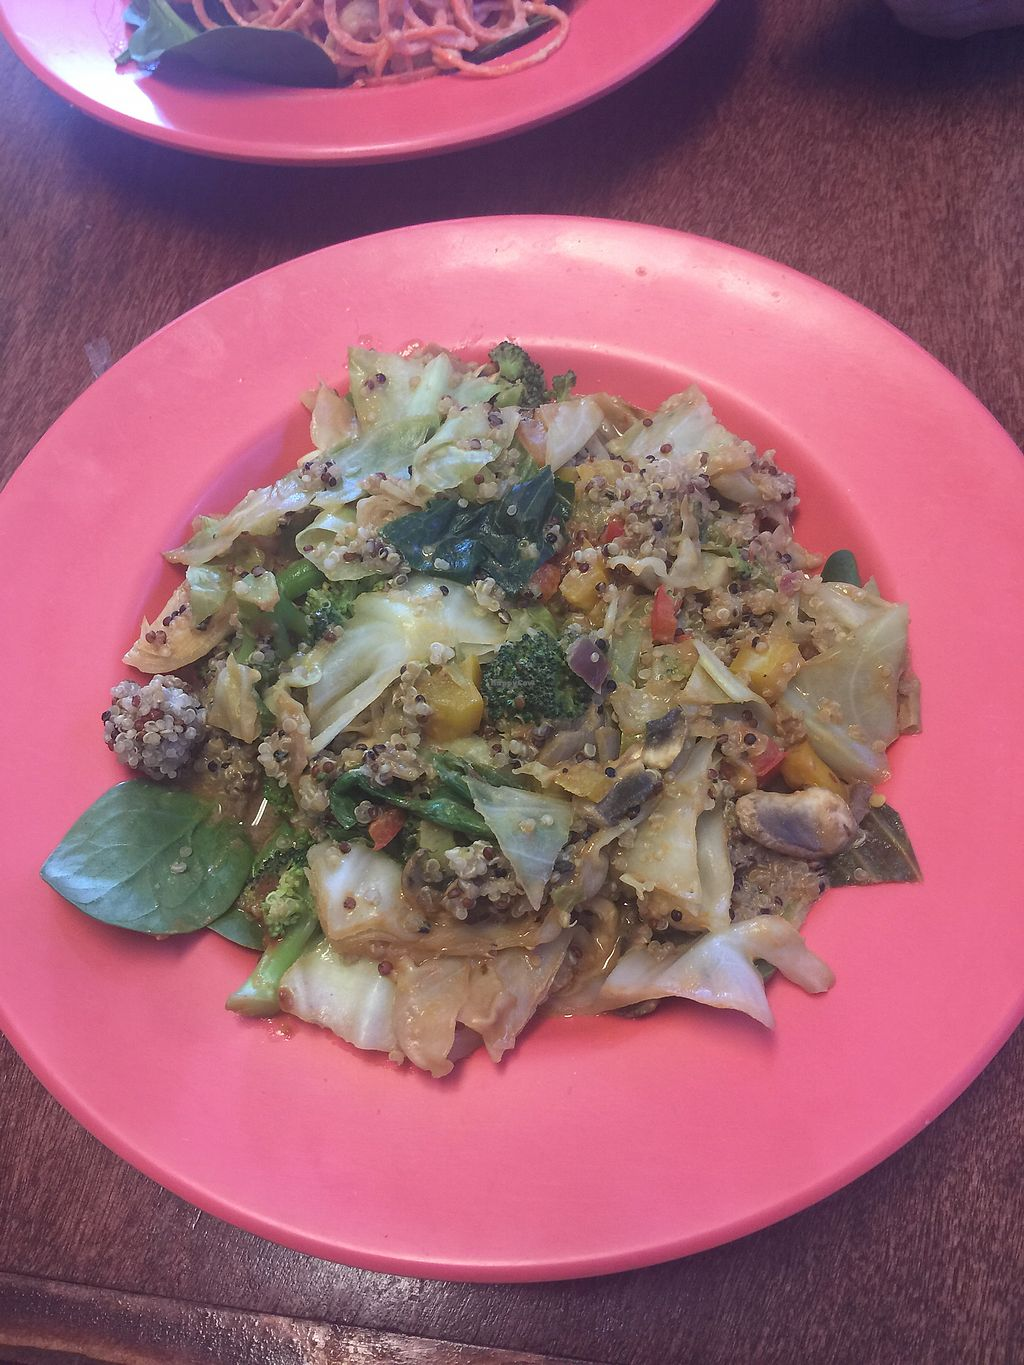 "Photo of Coco Greens  by <a href=""/members/profile/Tdjshields"">Tdjshields</a> <br/>Quiana Stir- Fry <br/> January 19, 2018  - <a href='/contact/abuse/image/38087/348190'>Report</a>"